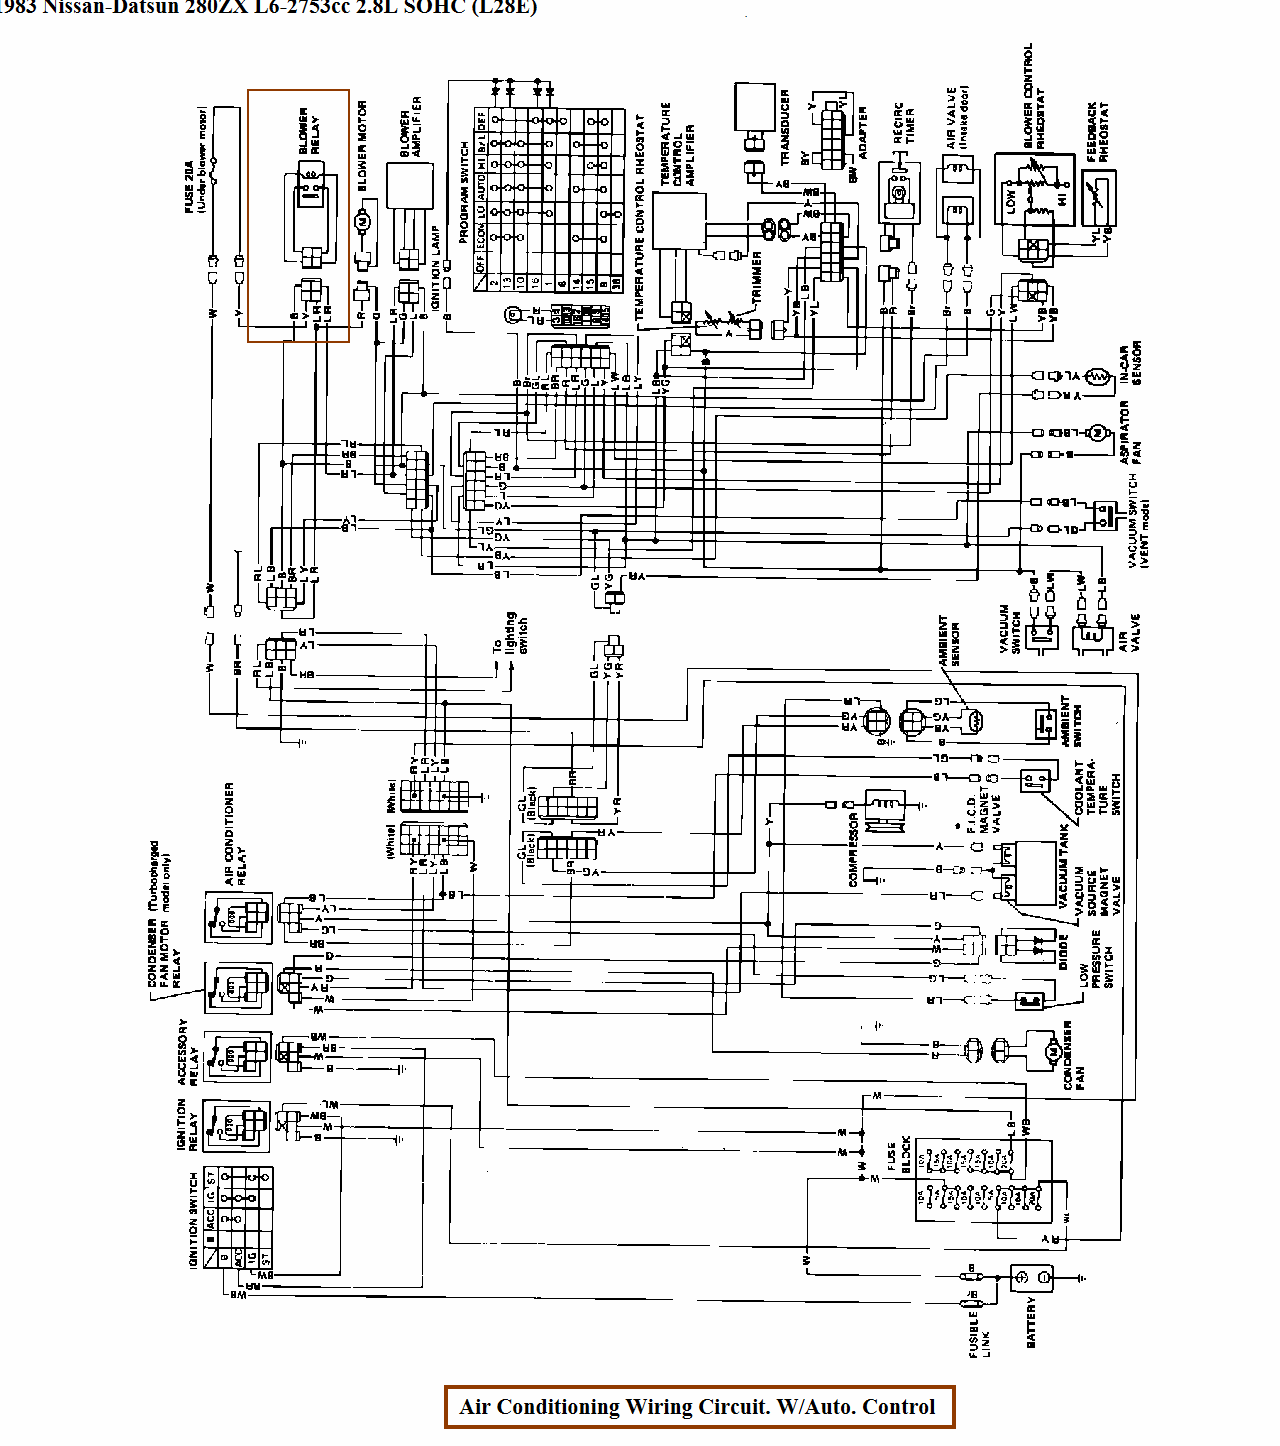 Location Of Blower Motor Relay On 1983 Nissan 280zx With Auto Heater Wiring Diagram Graphic